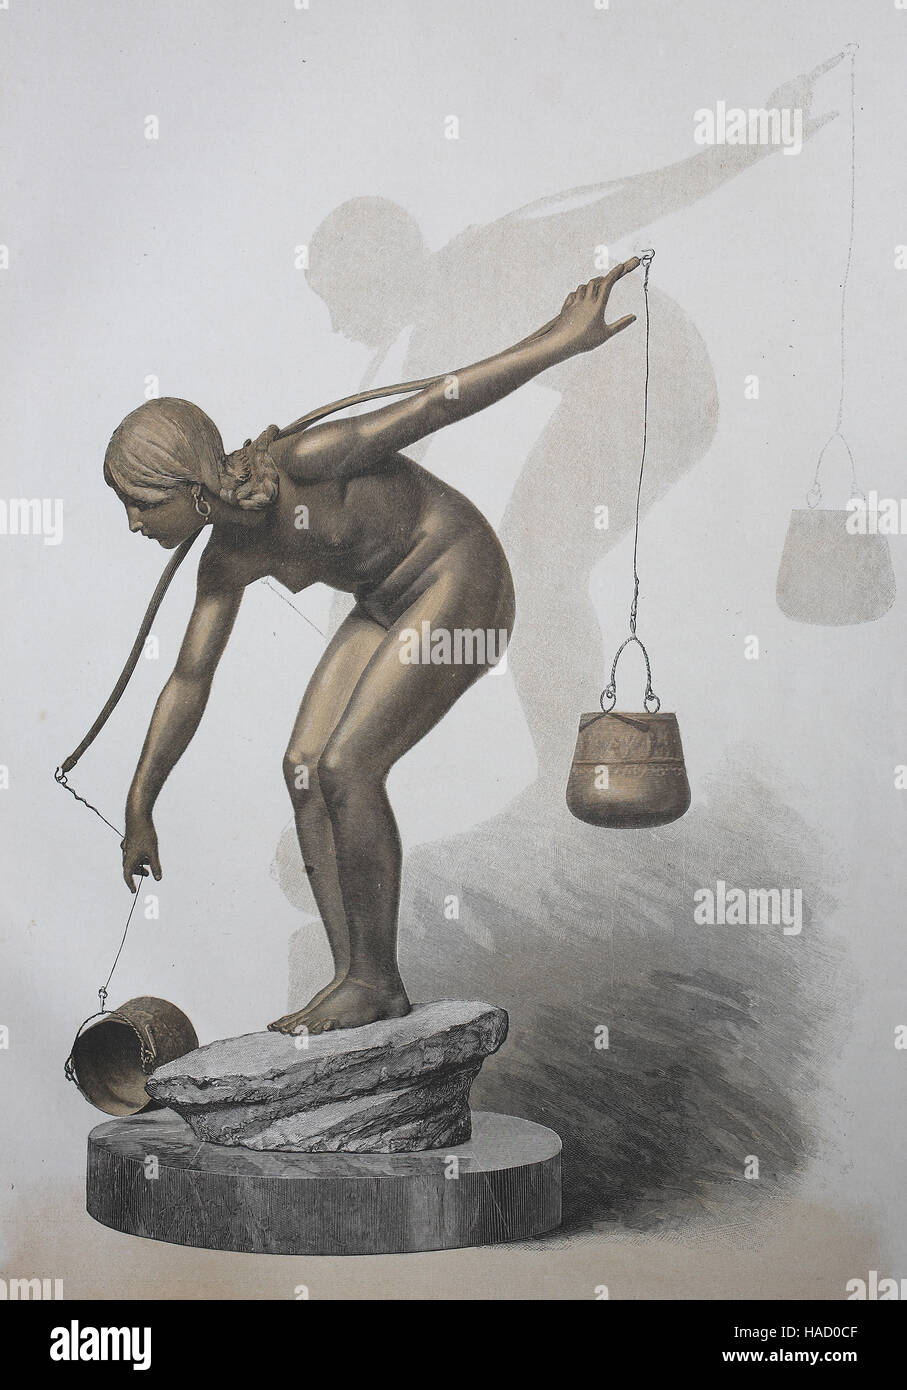 Statue of water creator, illustration published in 1880 - Stock Image